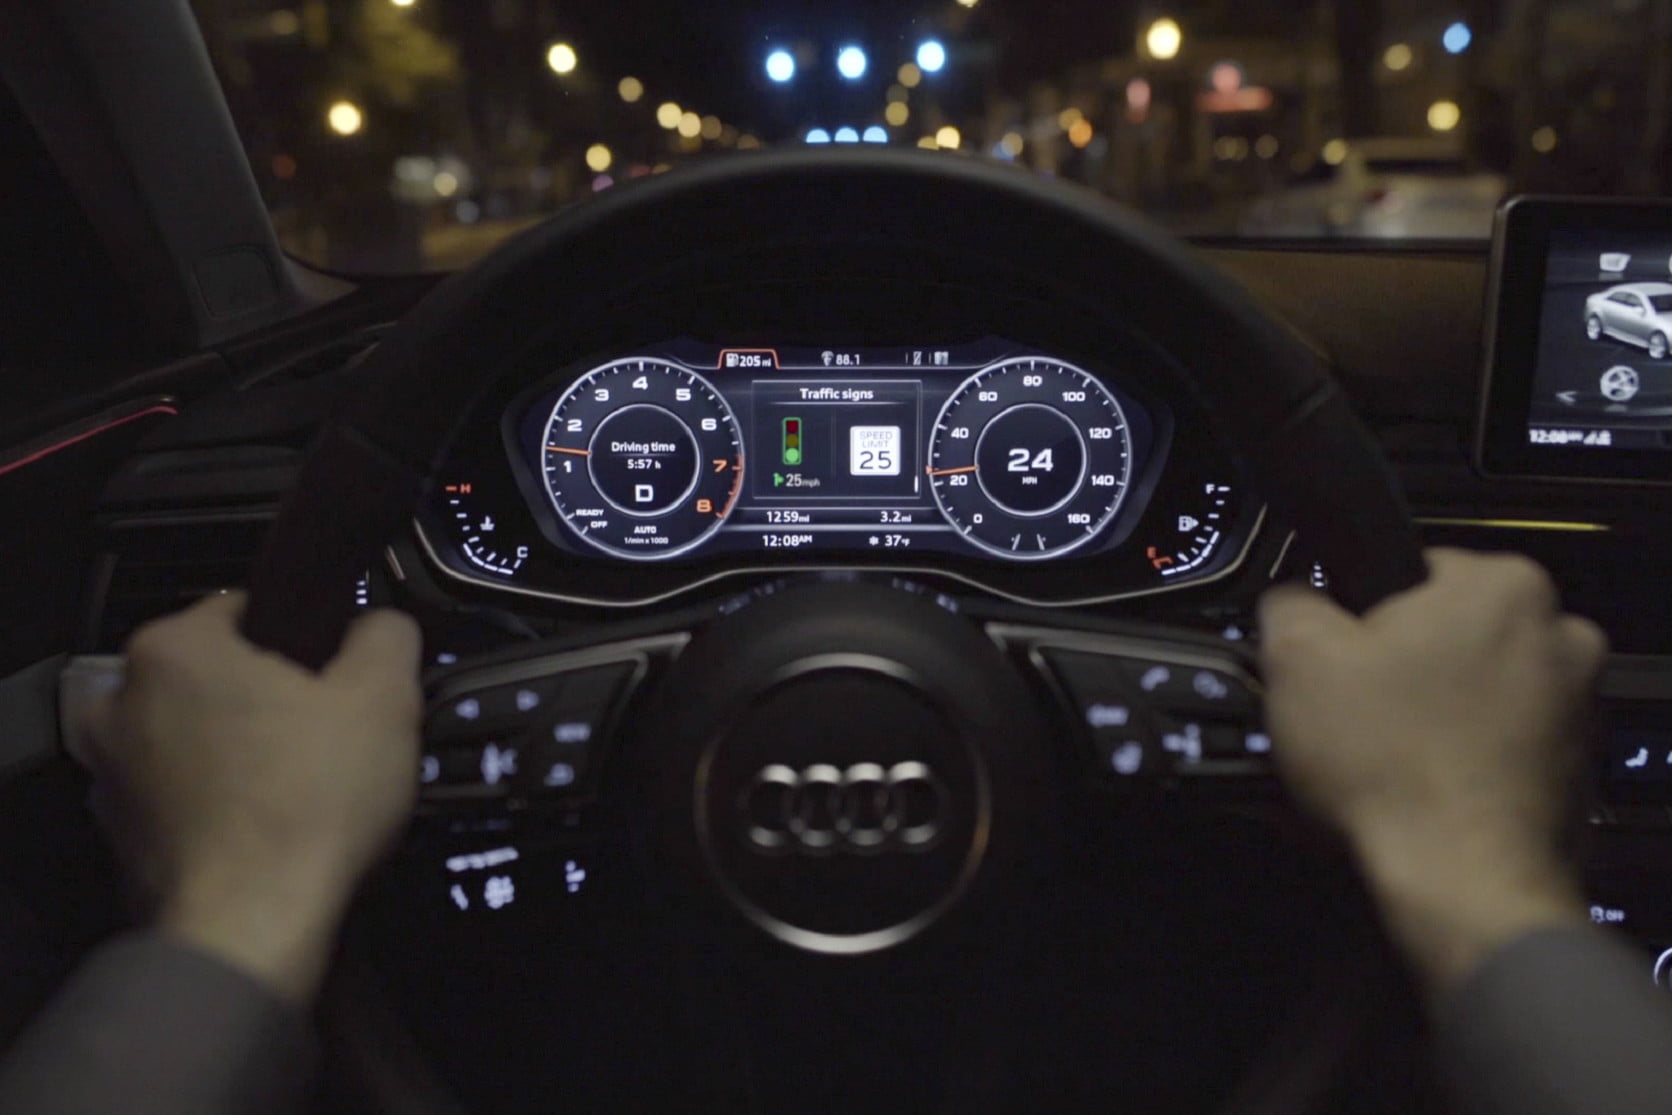 Audi Q8 will warn drivers when there are construction workers on the highway